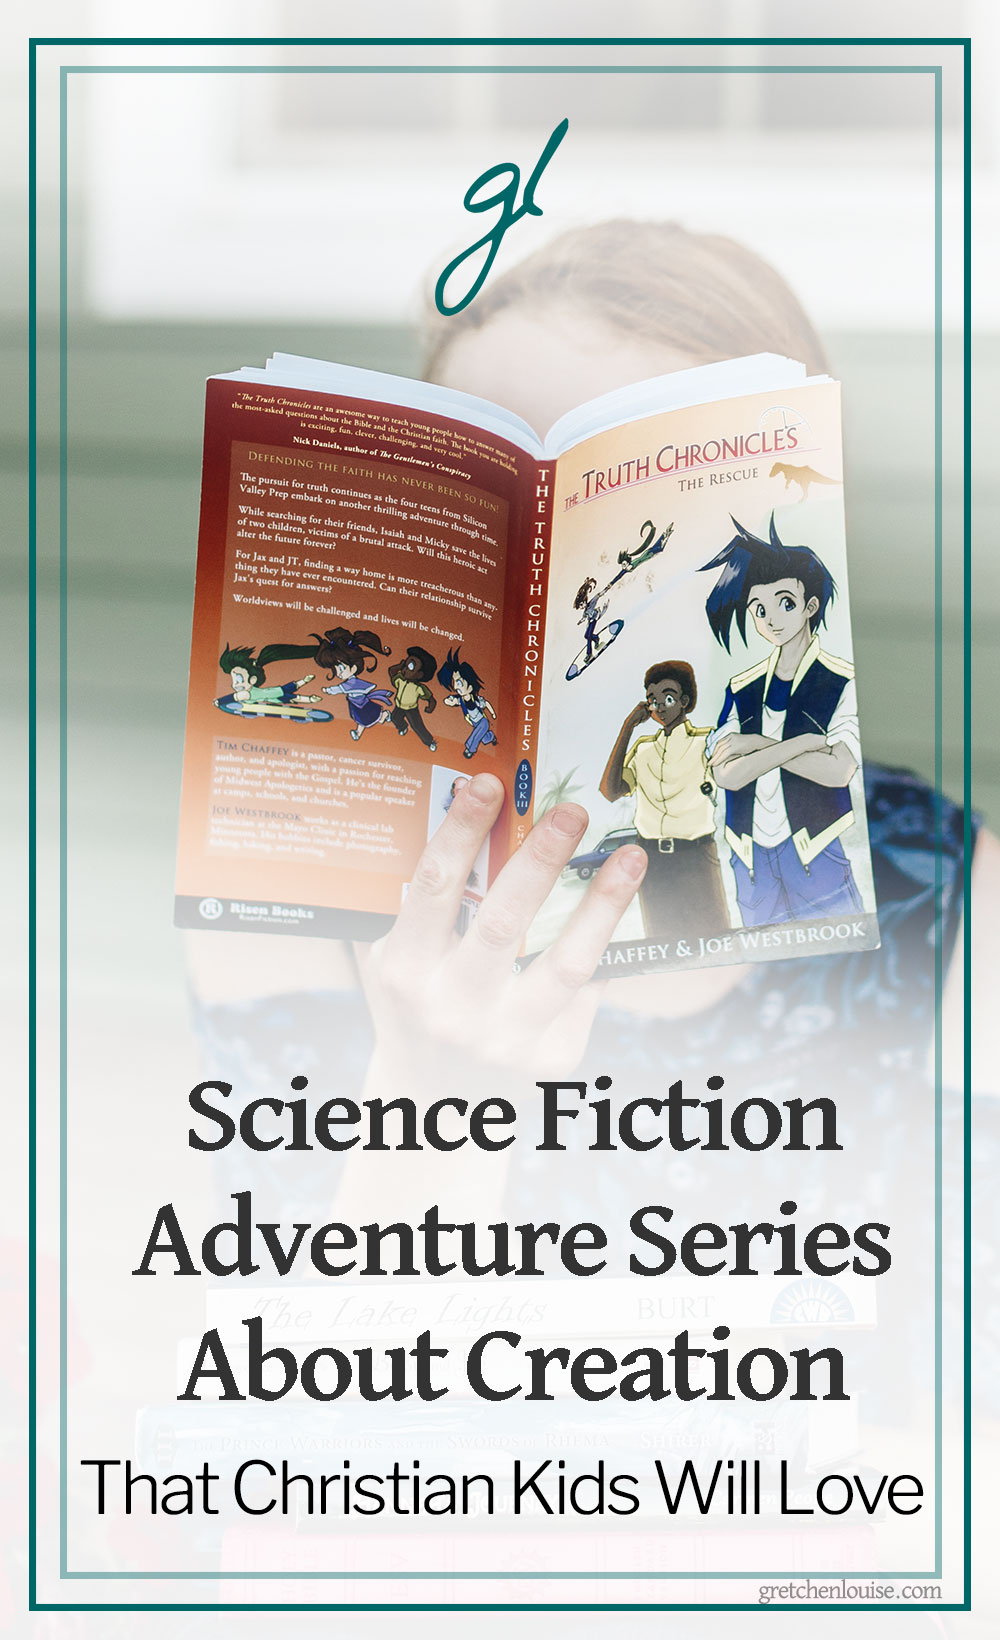 4 Science Fiction Adventure Series About Creation That Christian Kids Will Love via @GretLouise